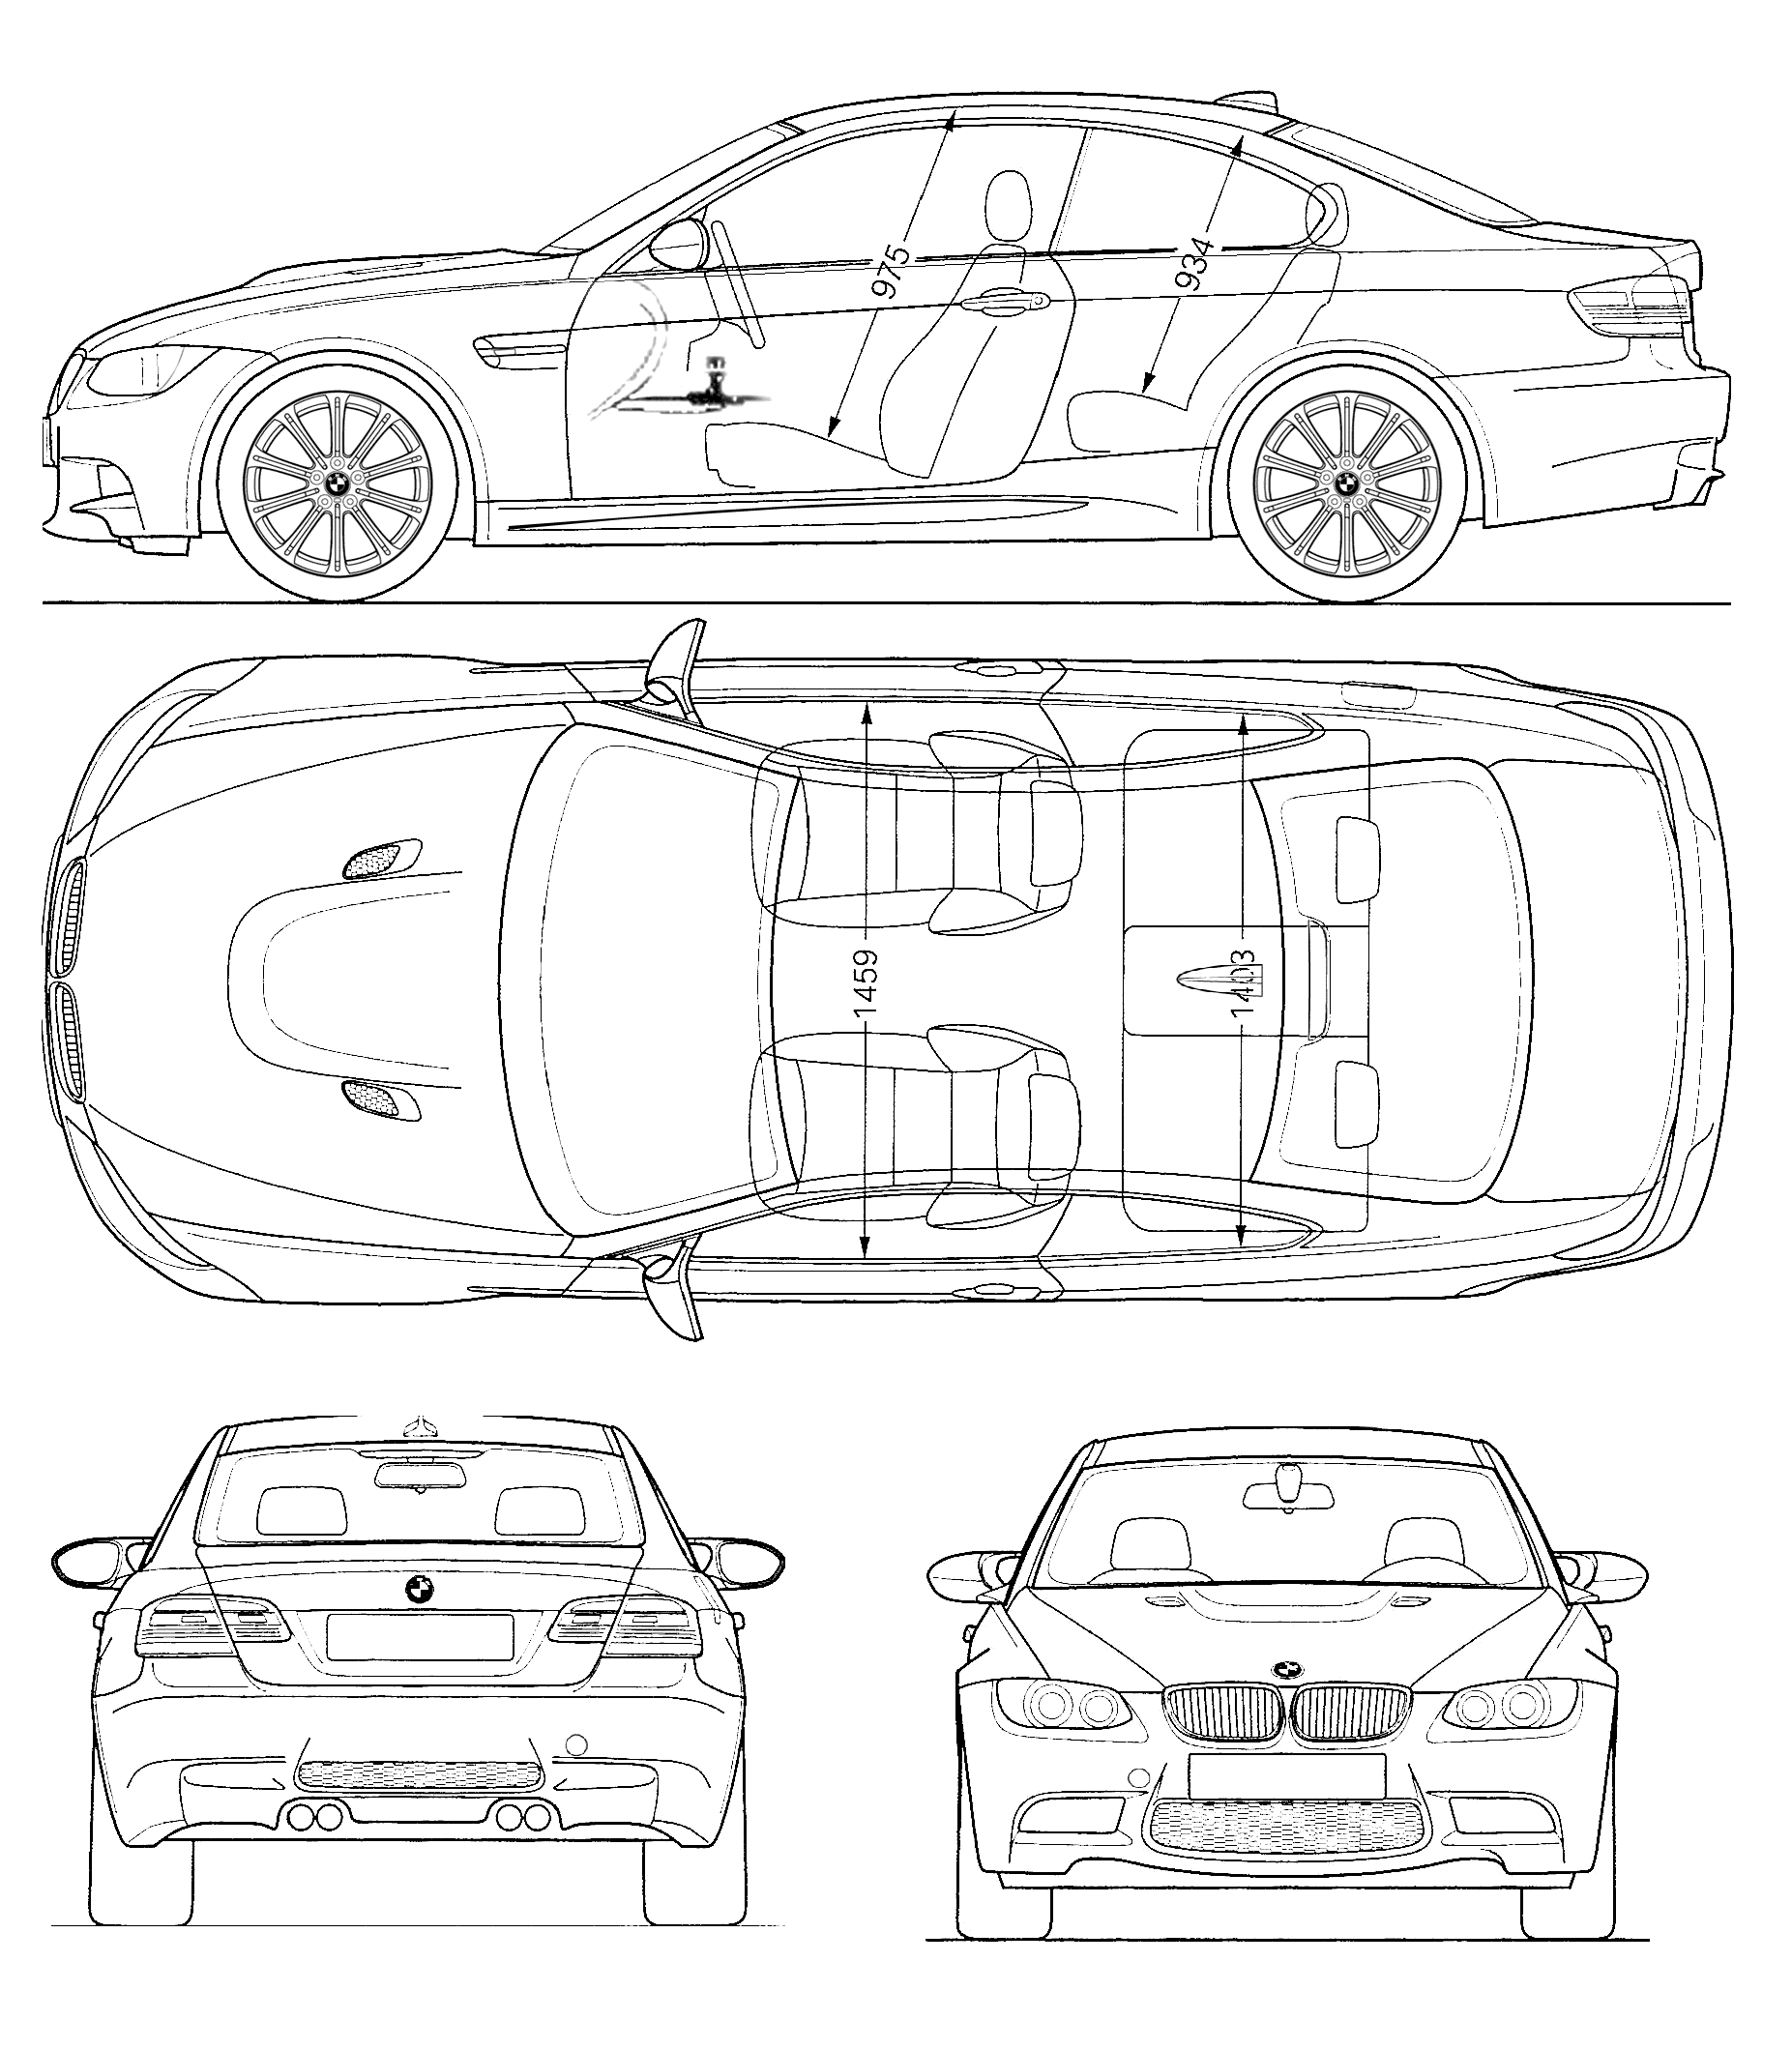 2009 bmw m3 e92 coupe blueprints free